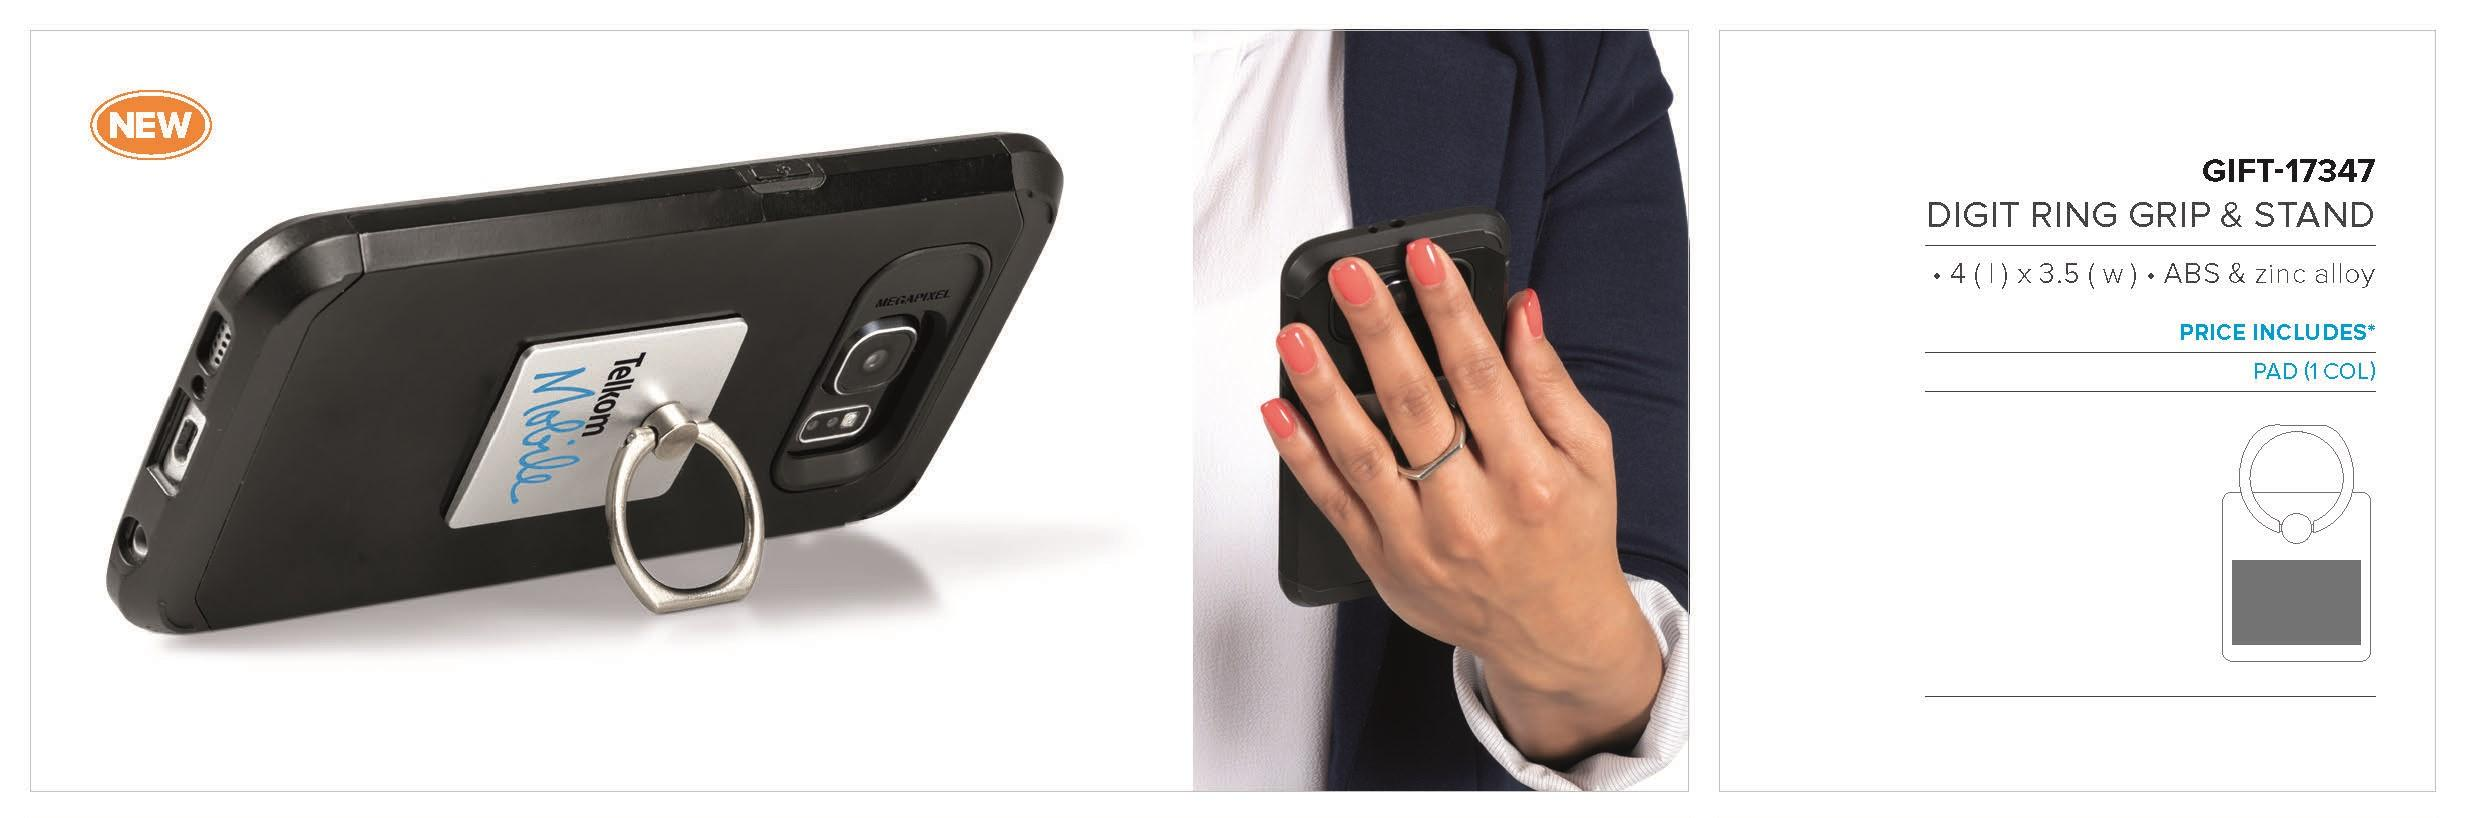 Digit Ring Grip & Stand